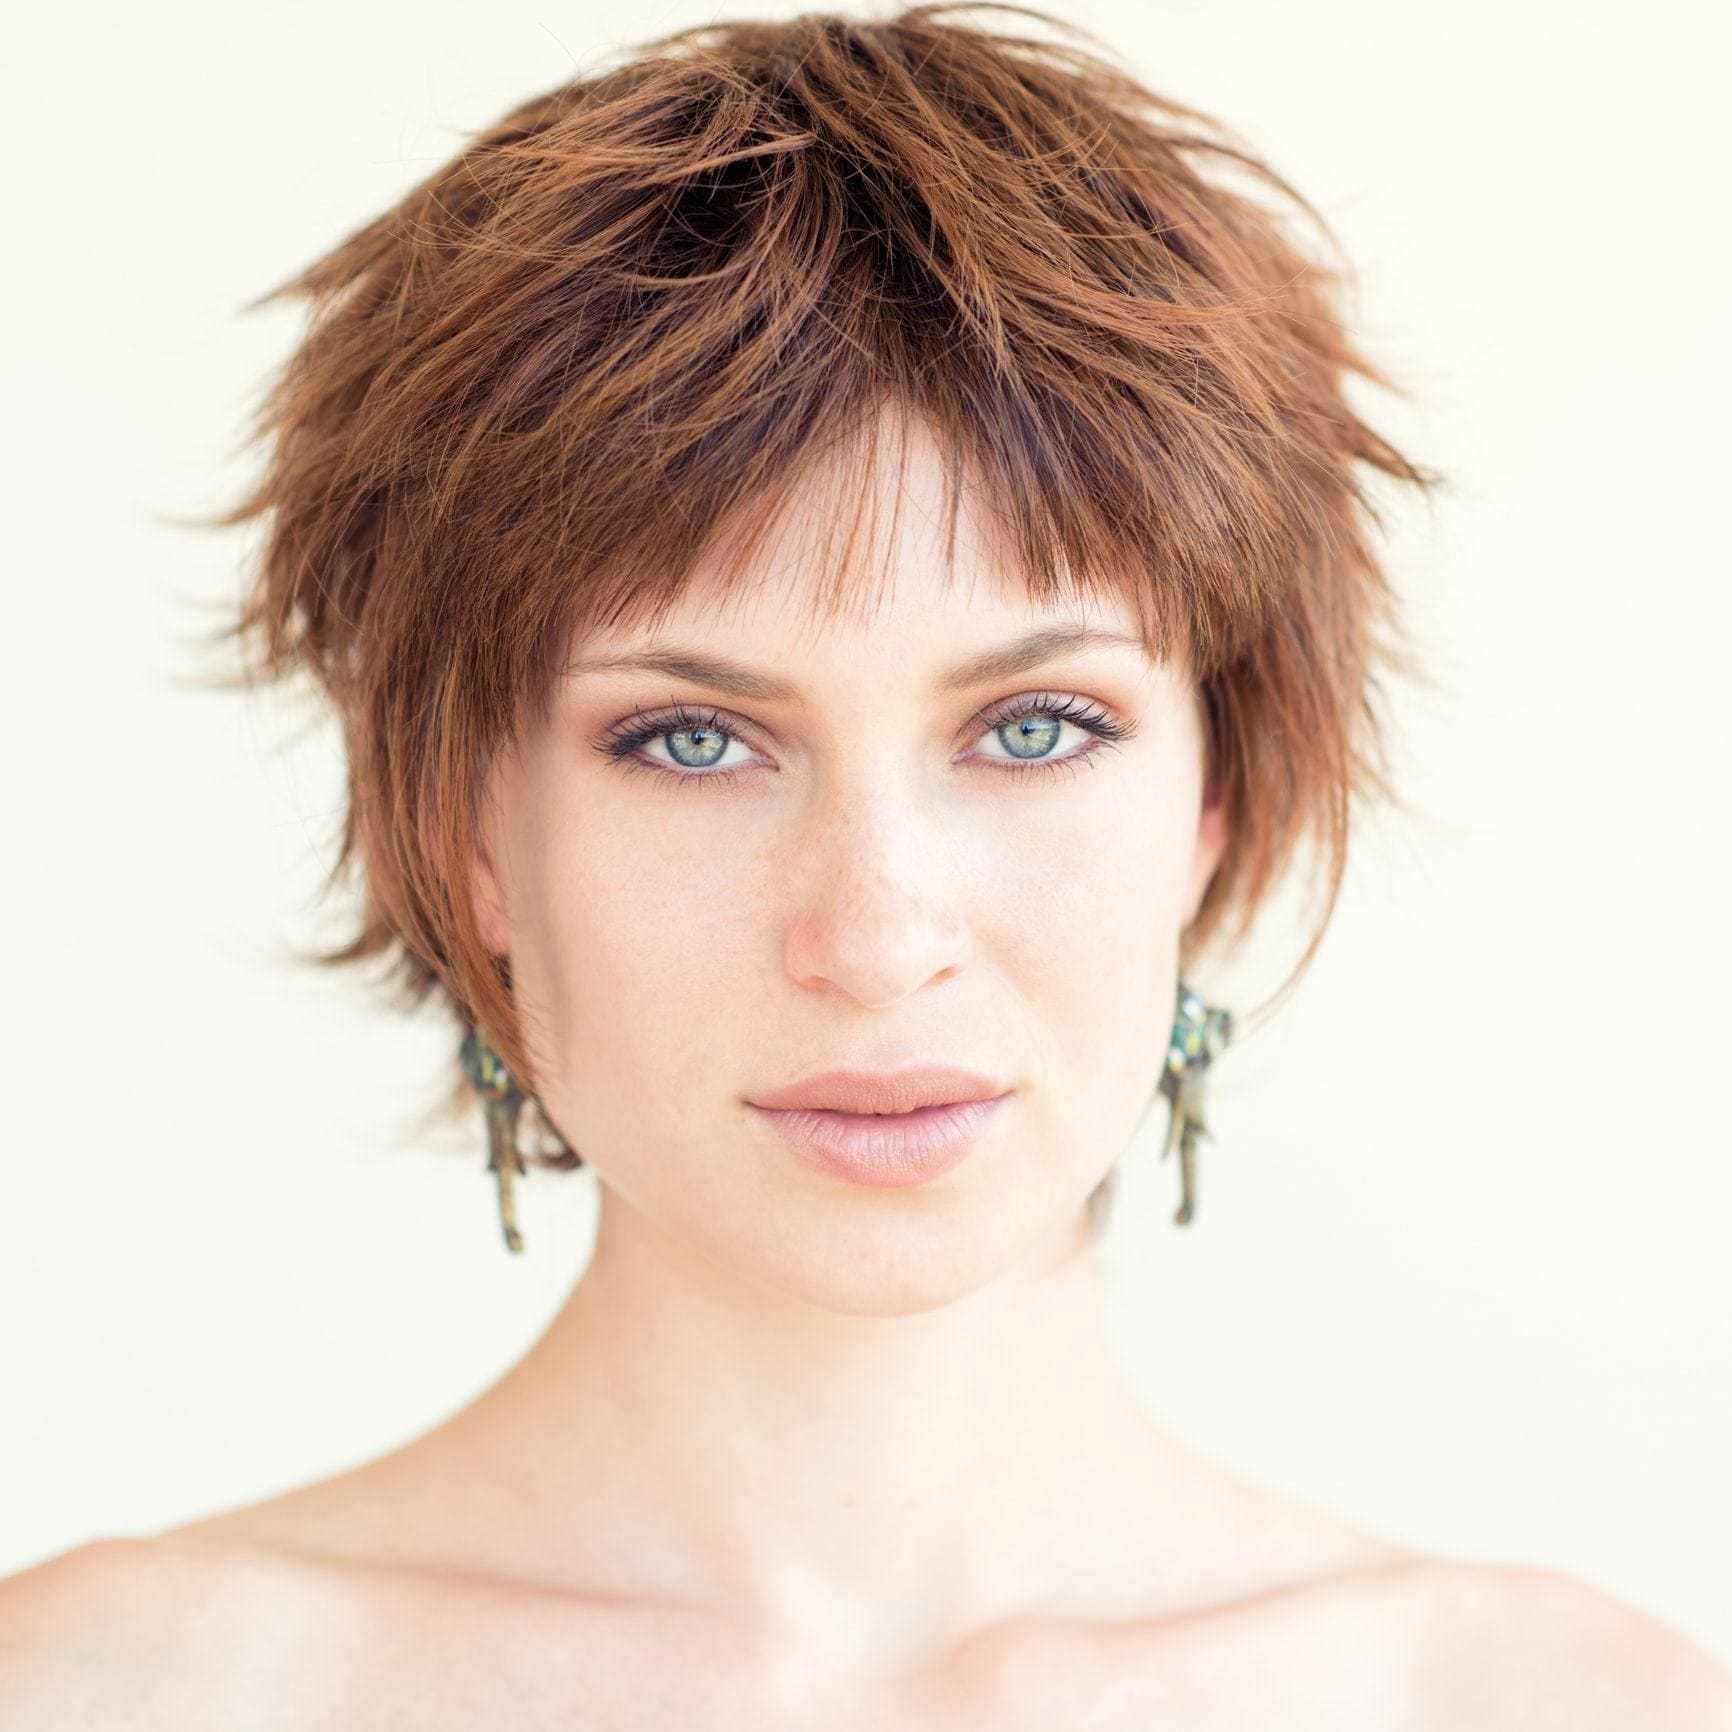 The Best Short Funky Hairstyles 6 Quirky Looks To Love Right Now Pictures